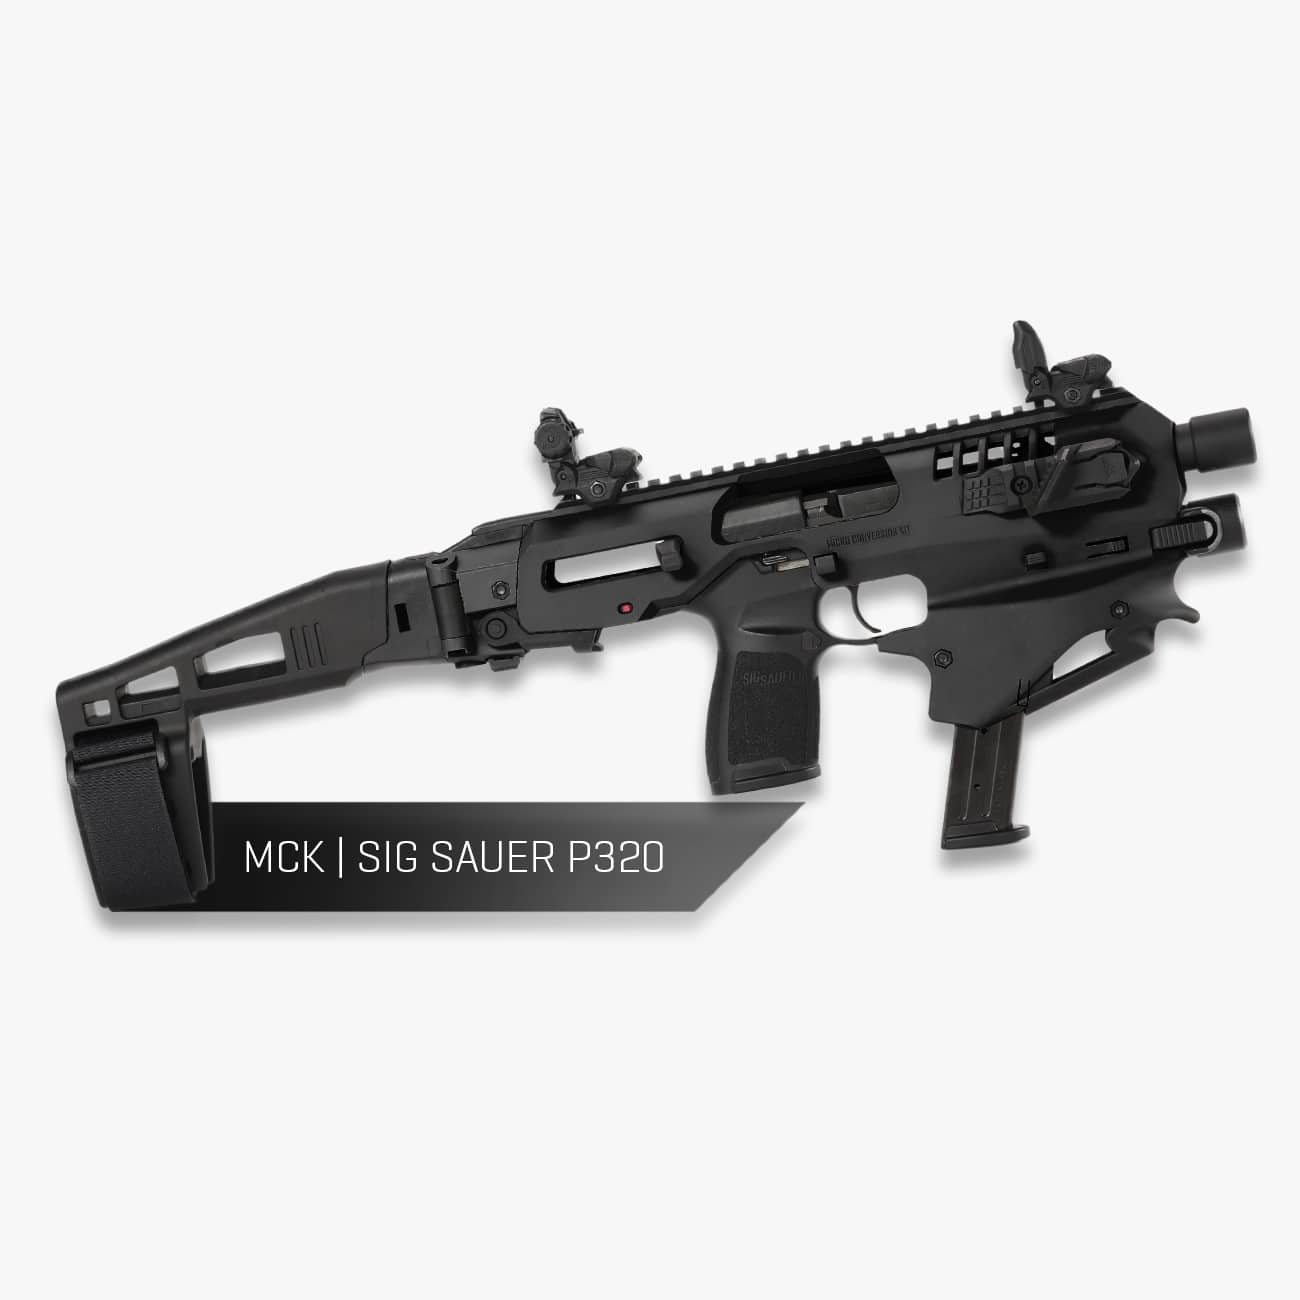 MCKSIG | Micro Conversion Kit (Sig Sauer)